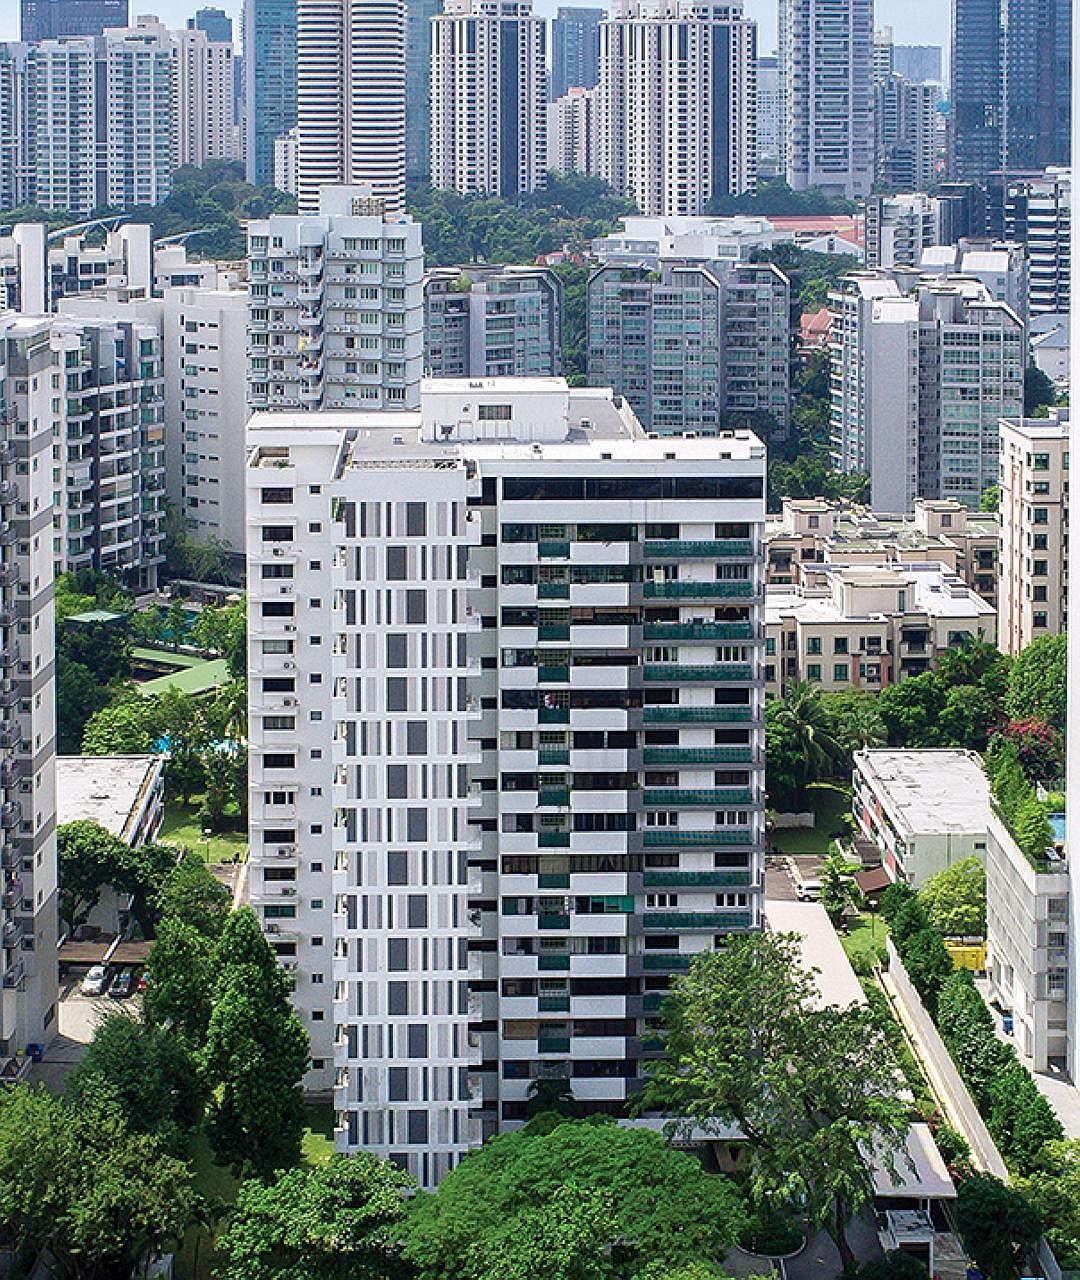 City Towers' sale had hit a snag after a pair of siblings, who owned two units, filed their objections in the High Court. But they later withdrew their objections and the sale order approving the collective sale was issued in May this year.